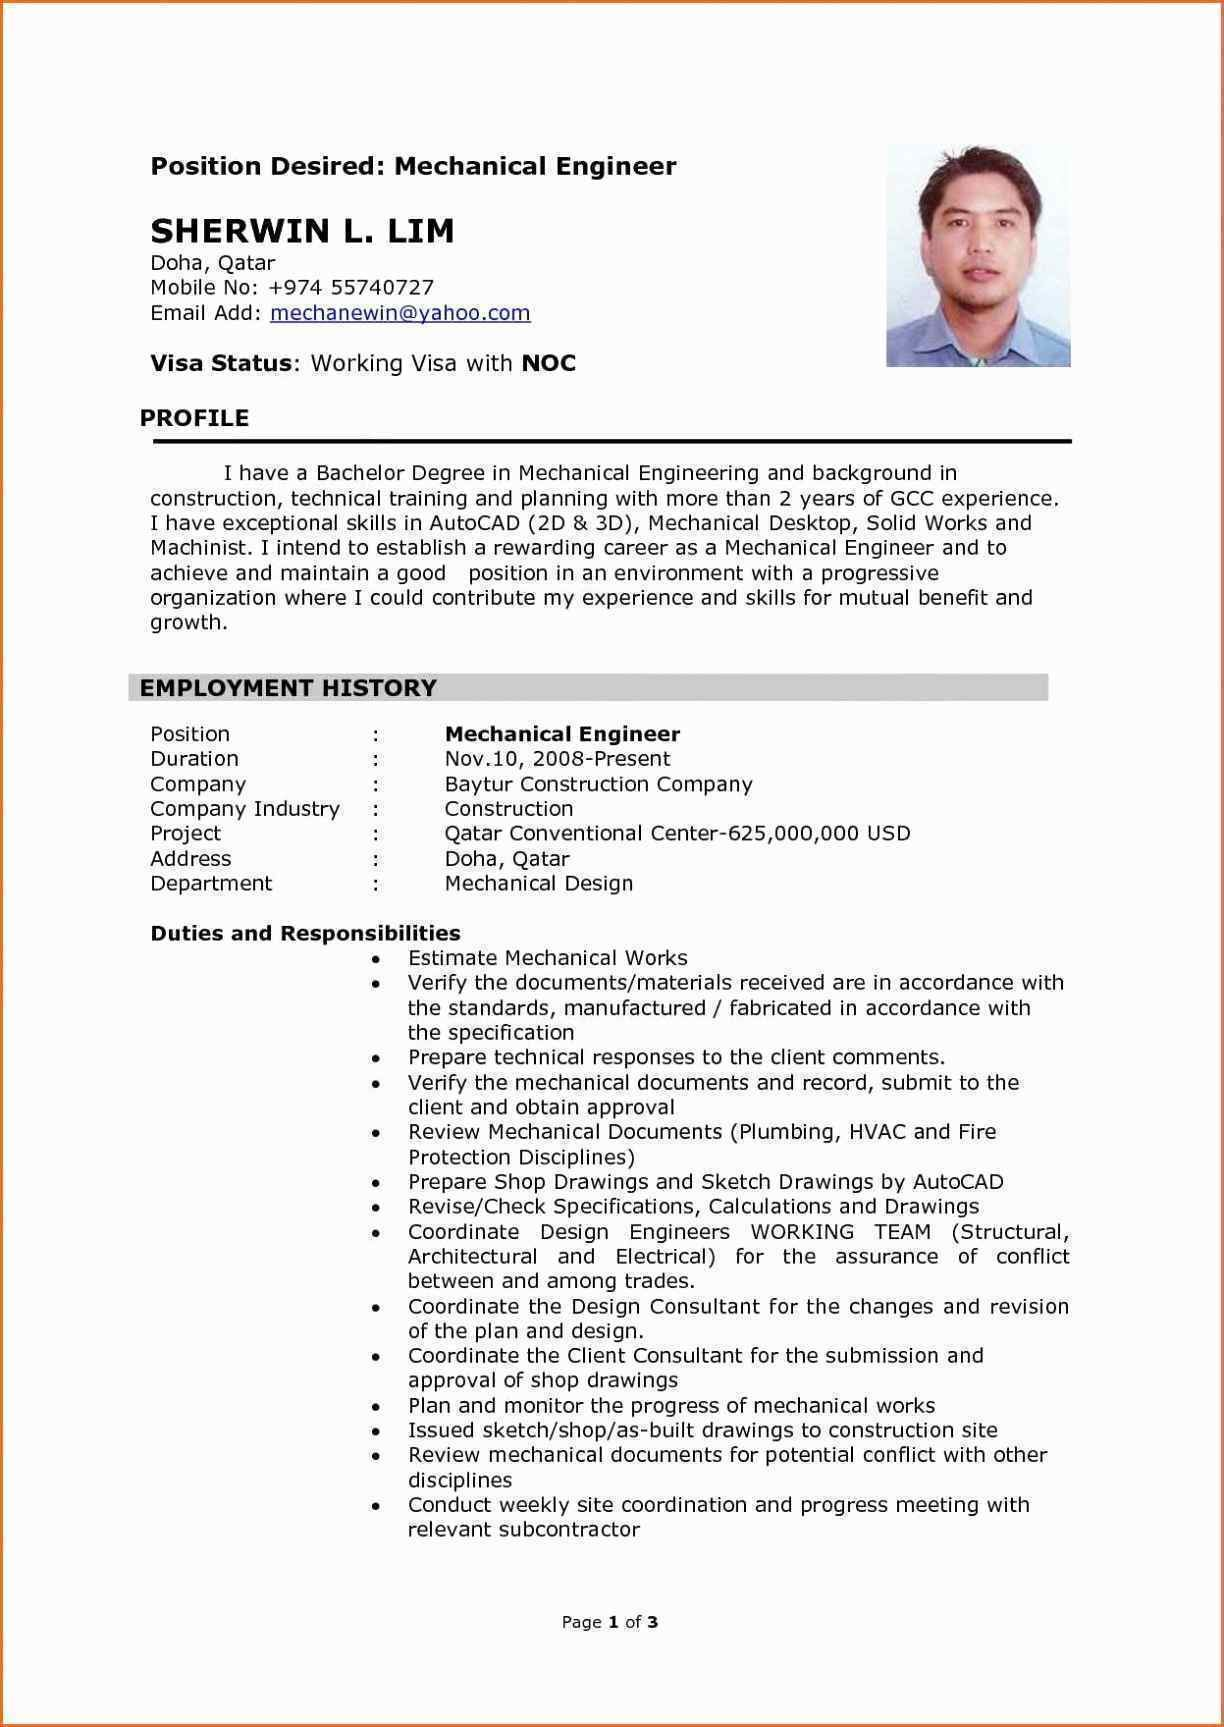 resume format mechanical engineer engineering examples template free objective for cruise Resume Mechanical Engineer Resume Template Free Download